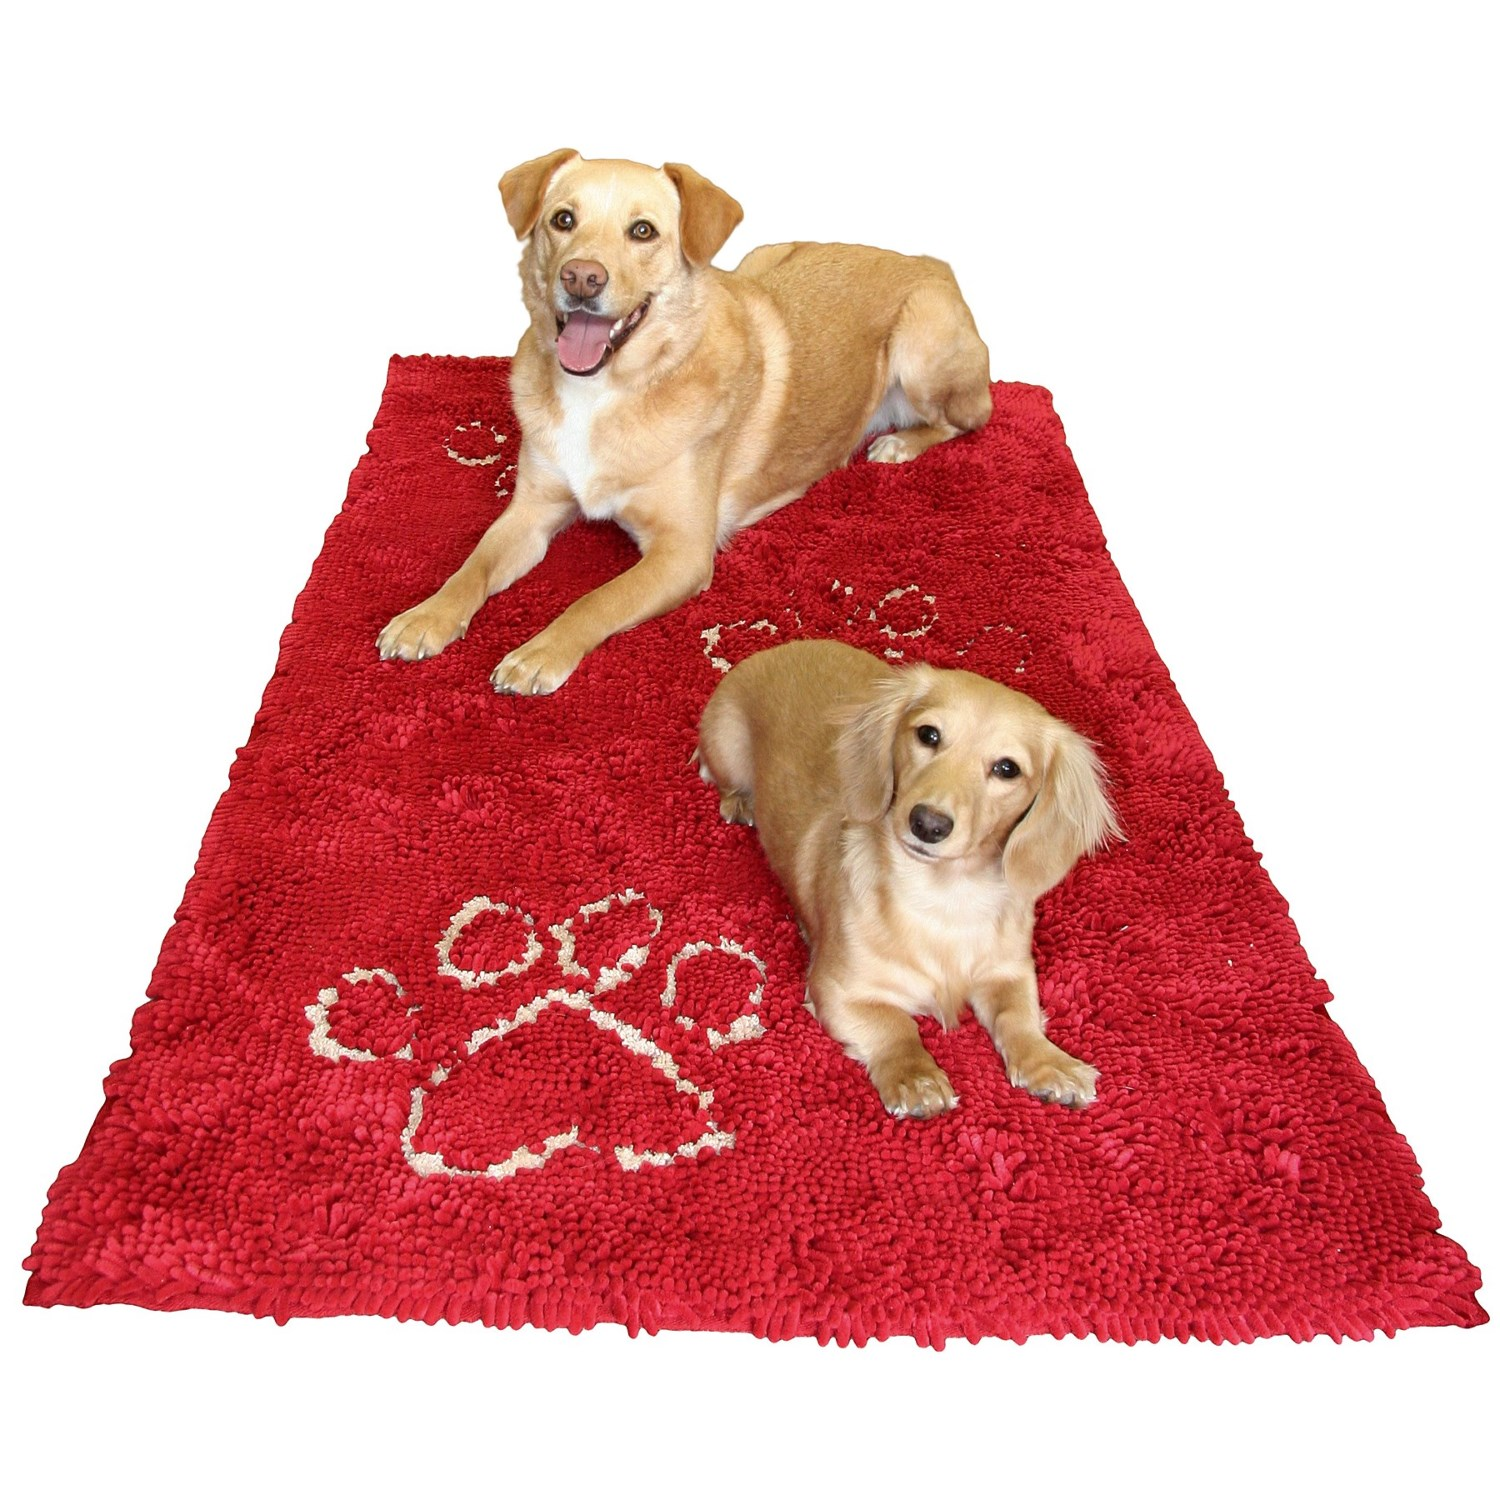 Dog Gone Smart Dirty Dog Doormat Reviews